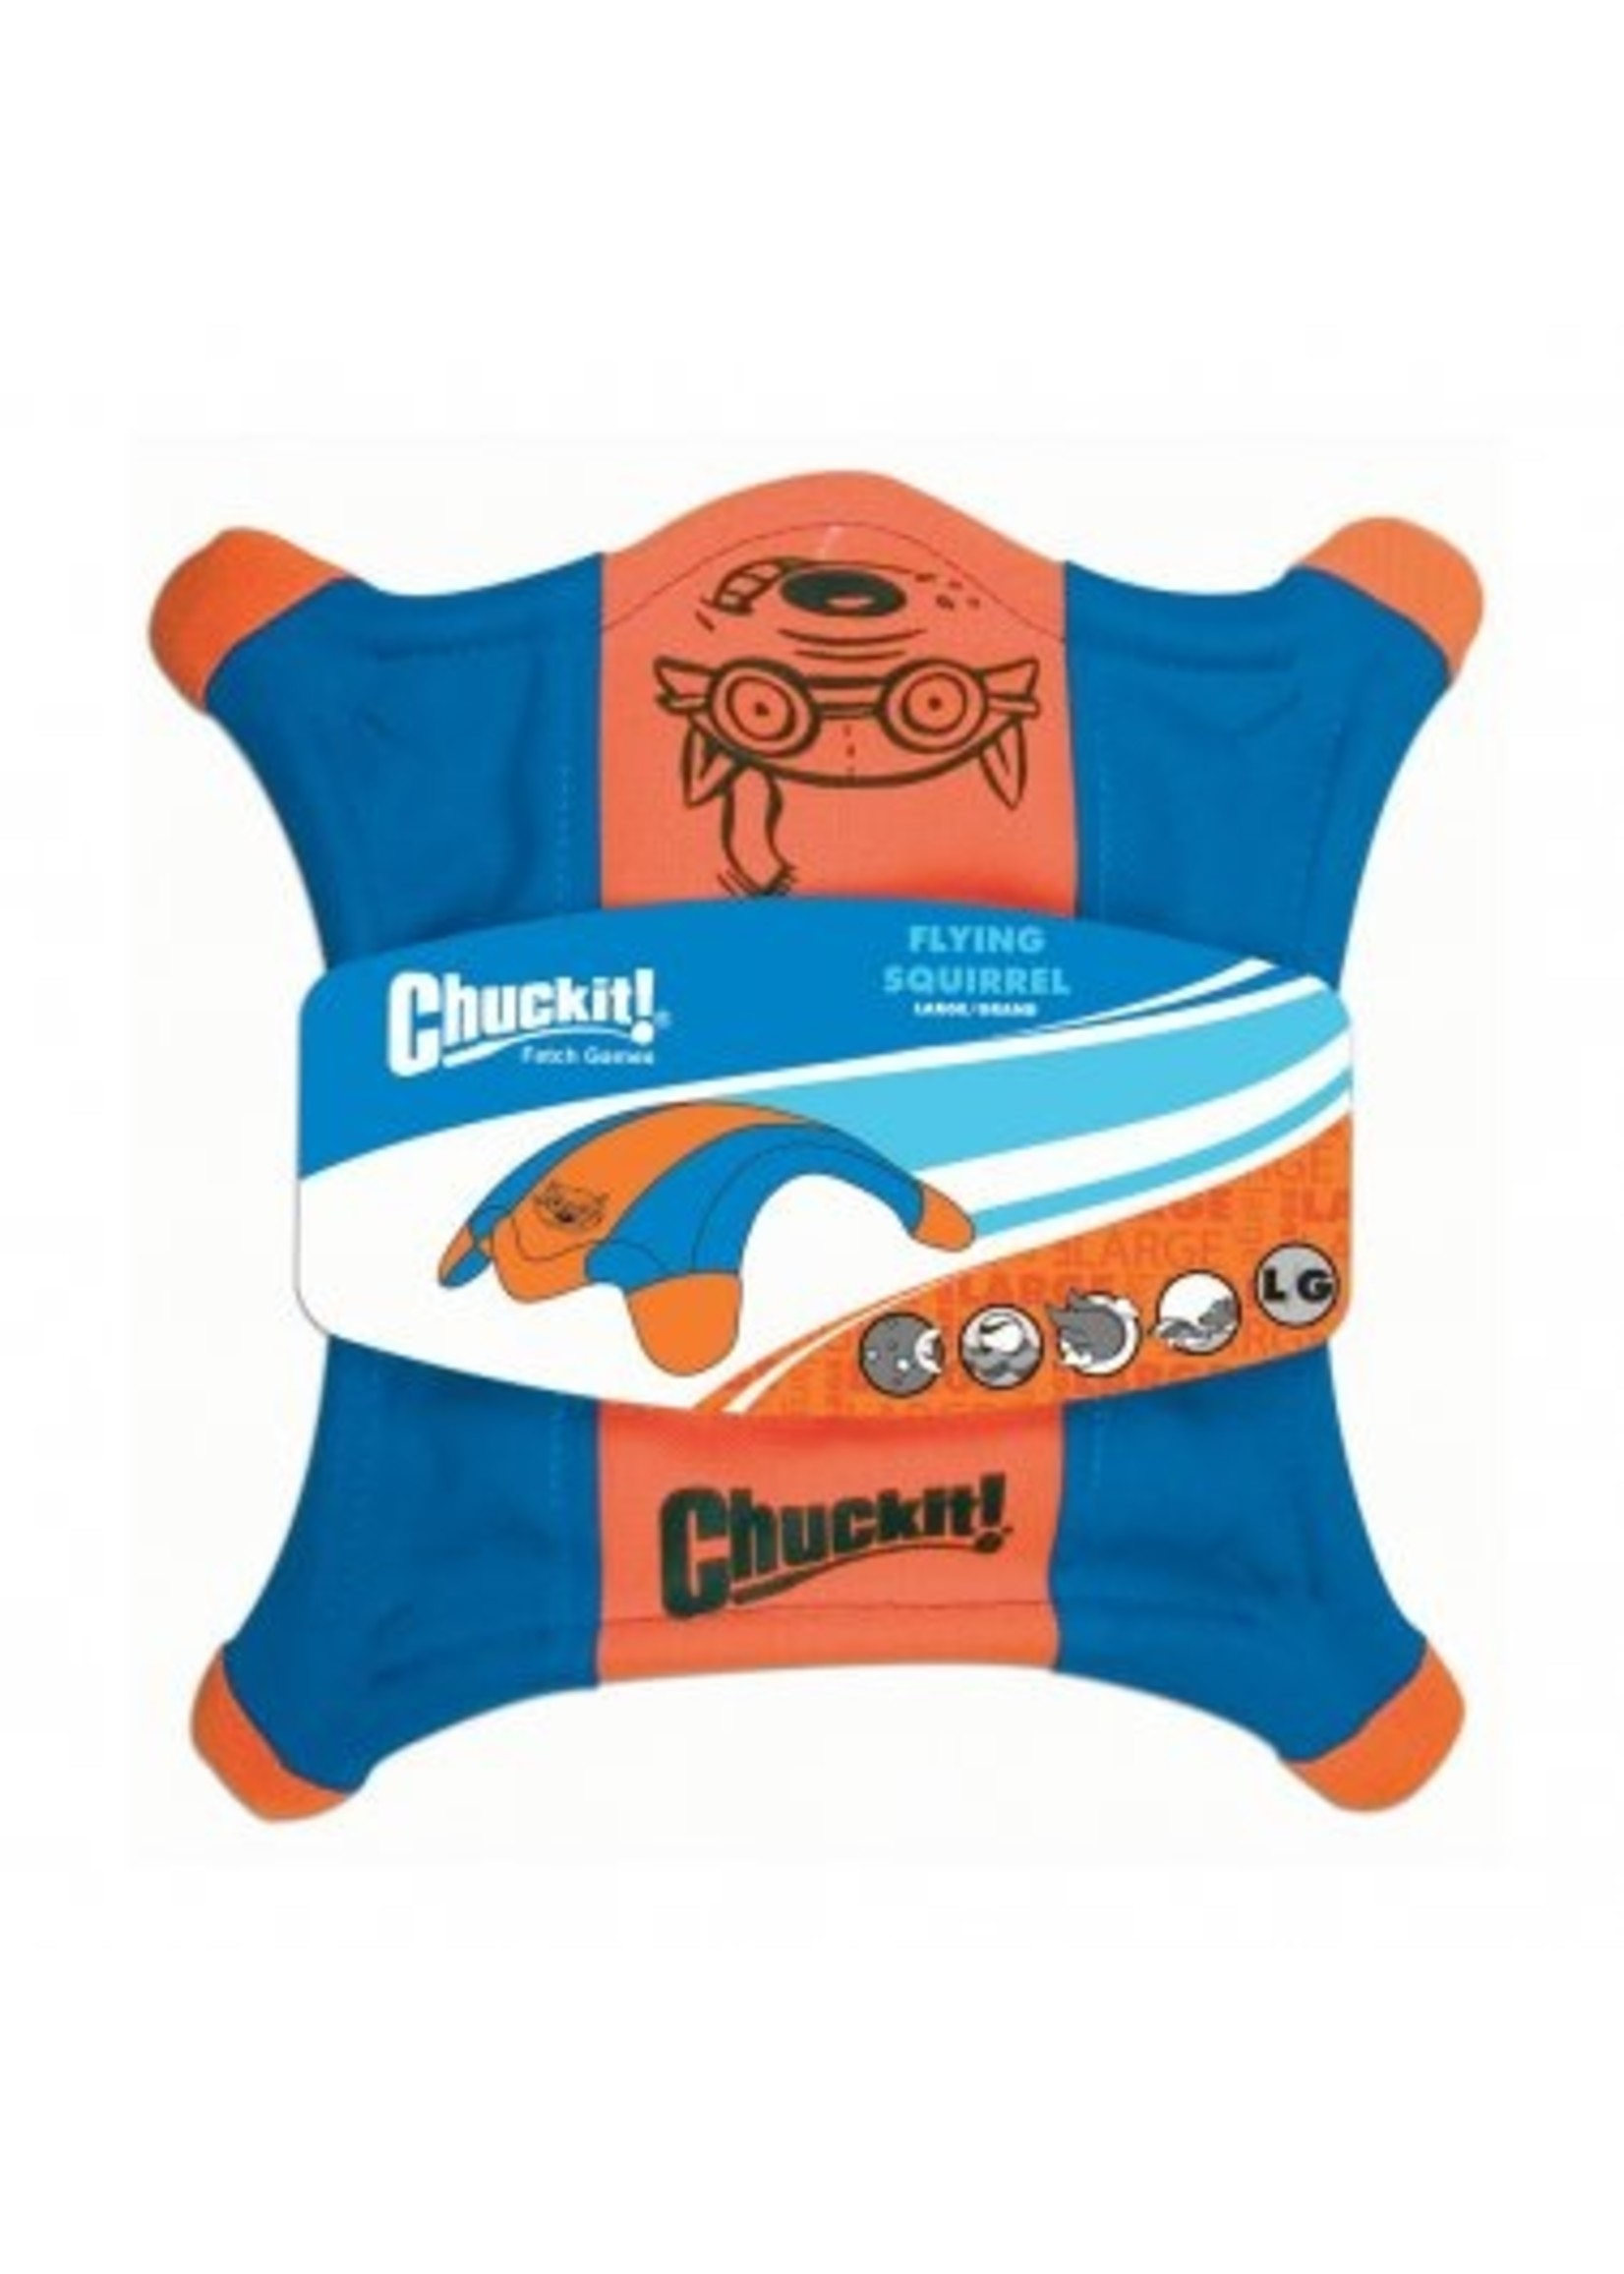 Chuckit!® Chuckit! Flying Squirrel Large